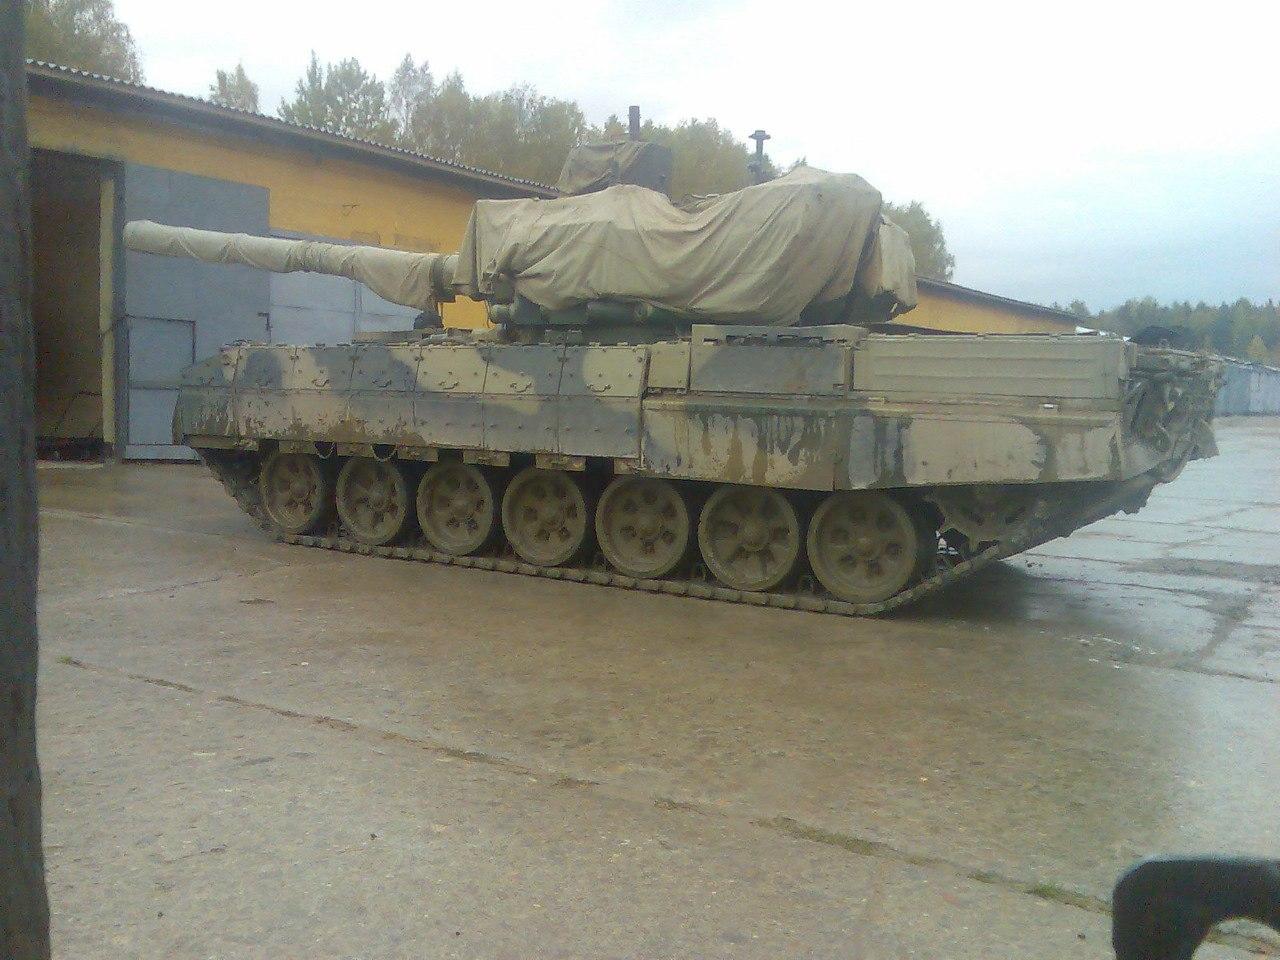 Quality Photo Of Object 195 Tank